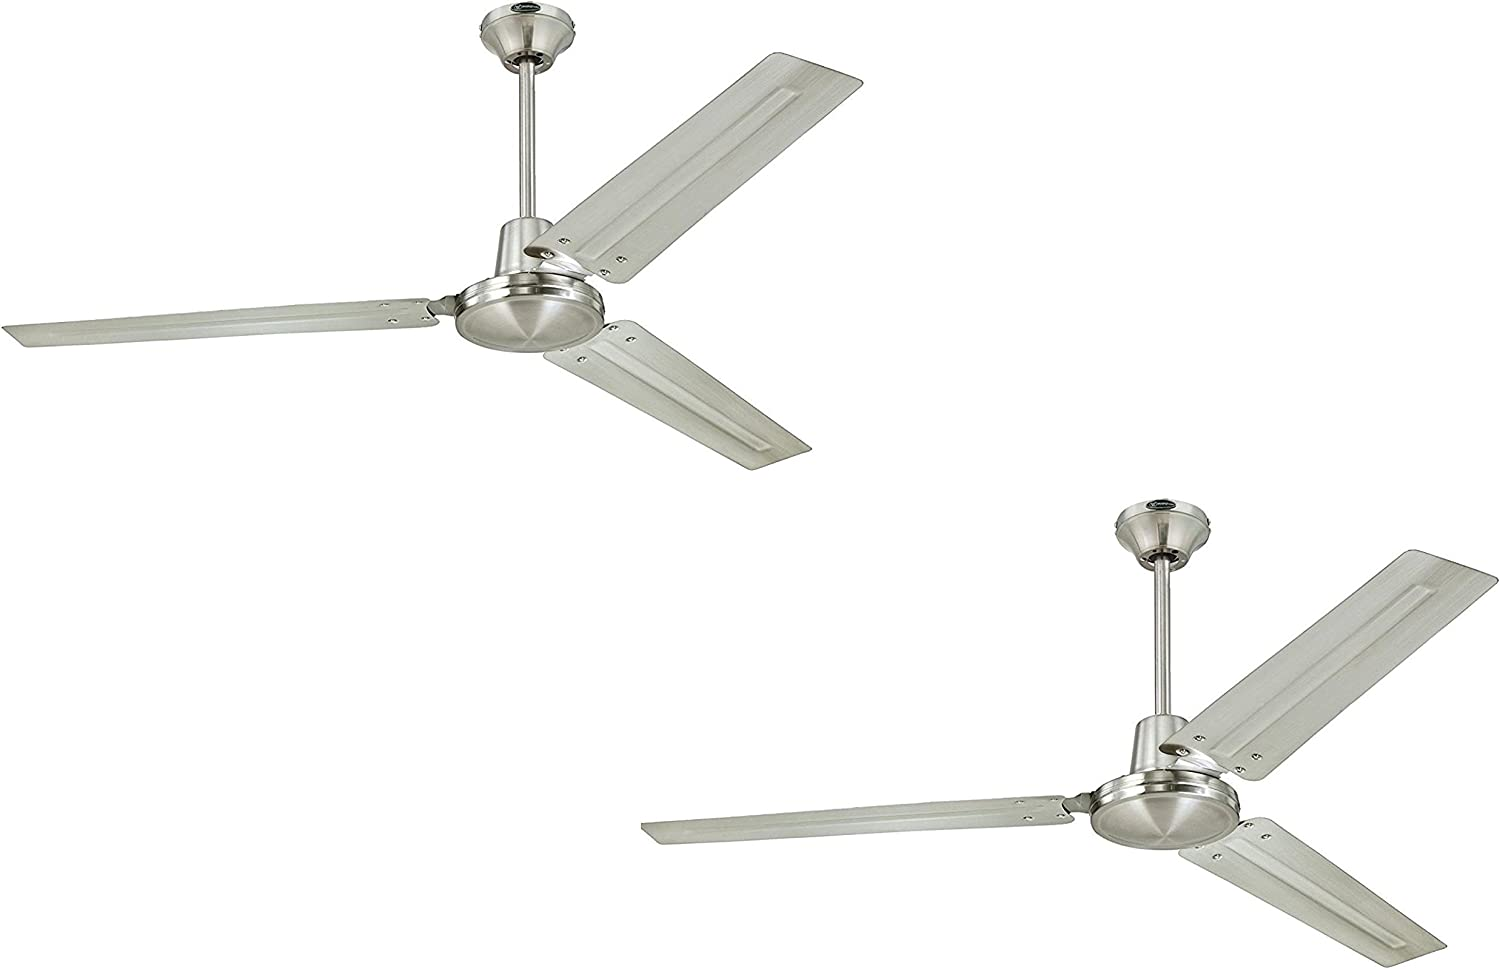 Ciata Lighting Industrial 56 Inch Three Blade Indoor Ceiling Fan, with Brushed Nickel Steel Blades in Brushed Nickel Finish – 2 Pack